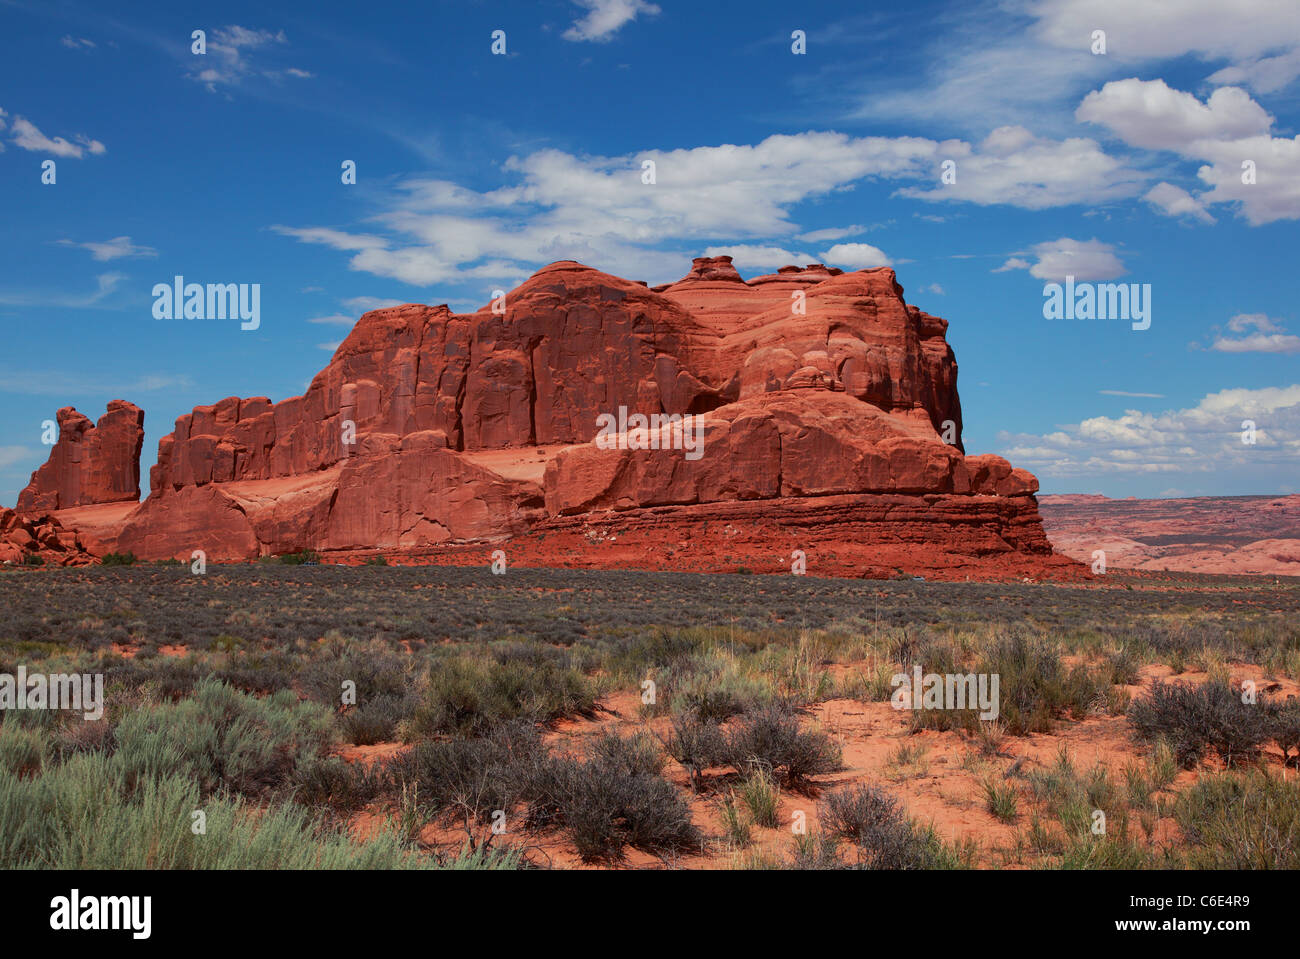 Red Rock formations, located in Arches National Park in Moab, Utah. - Stock Image